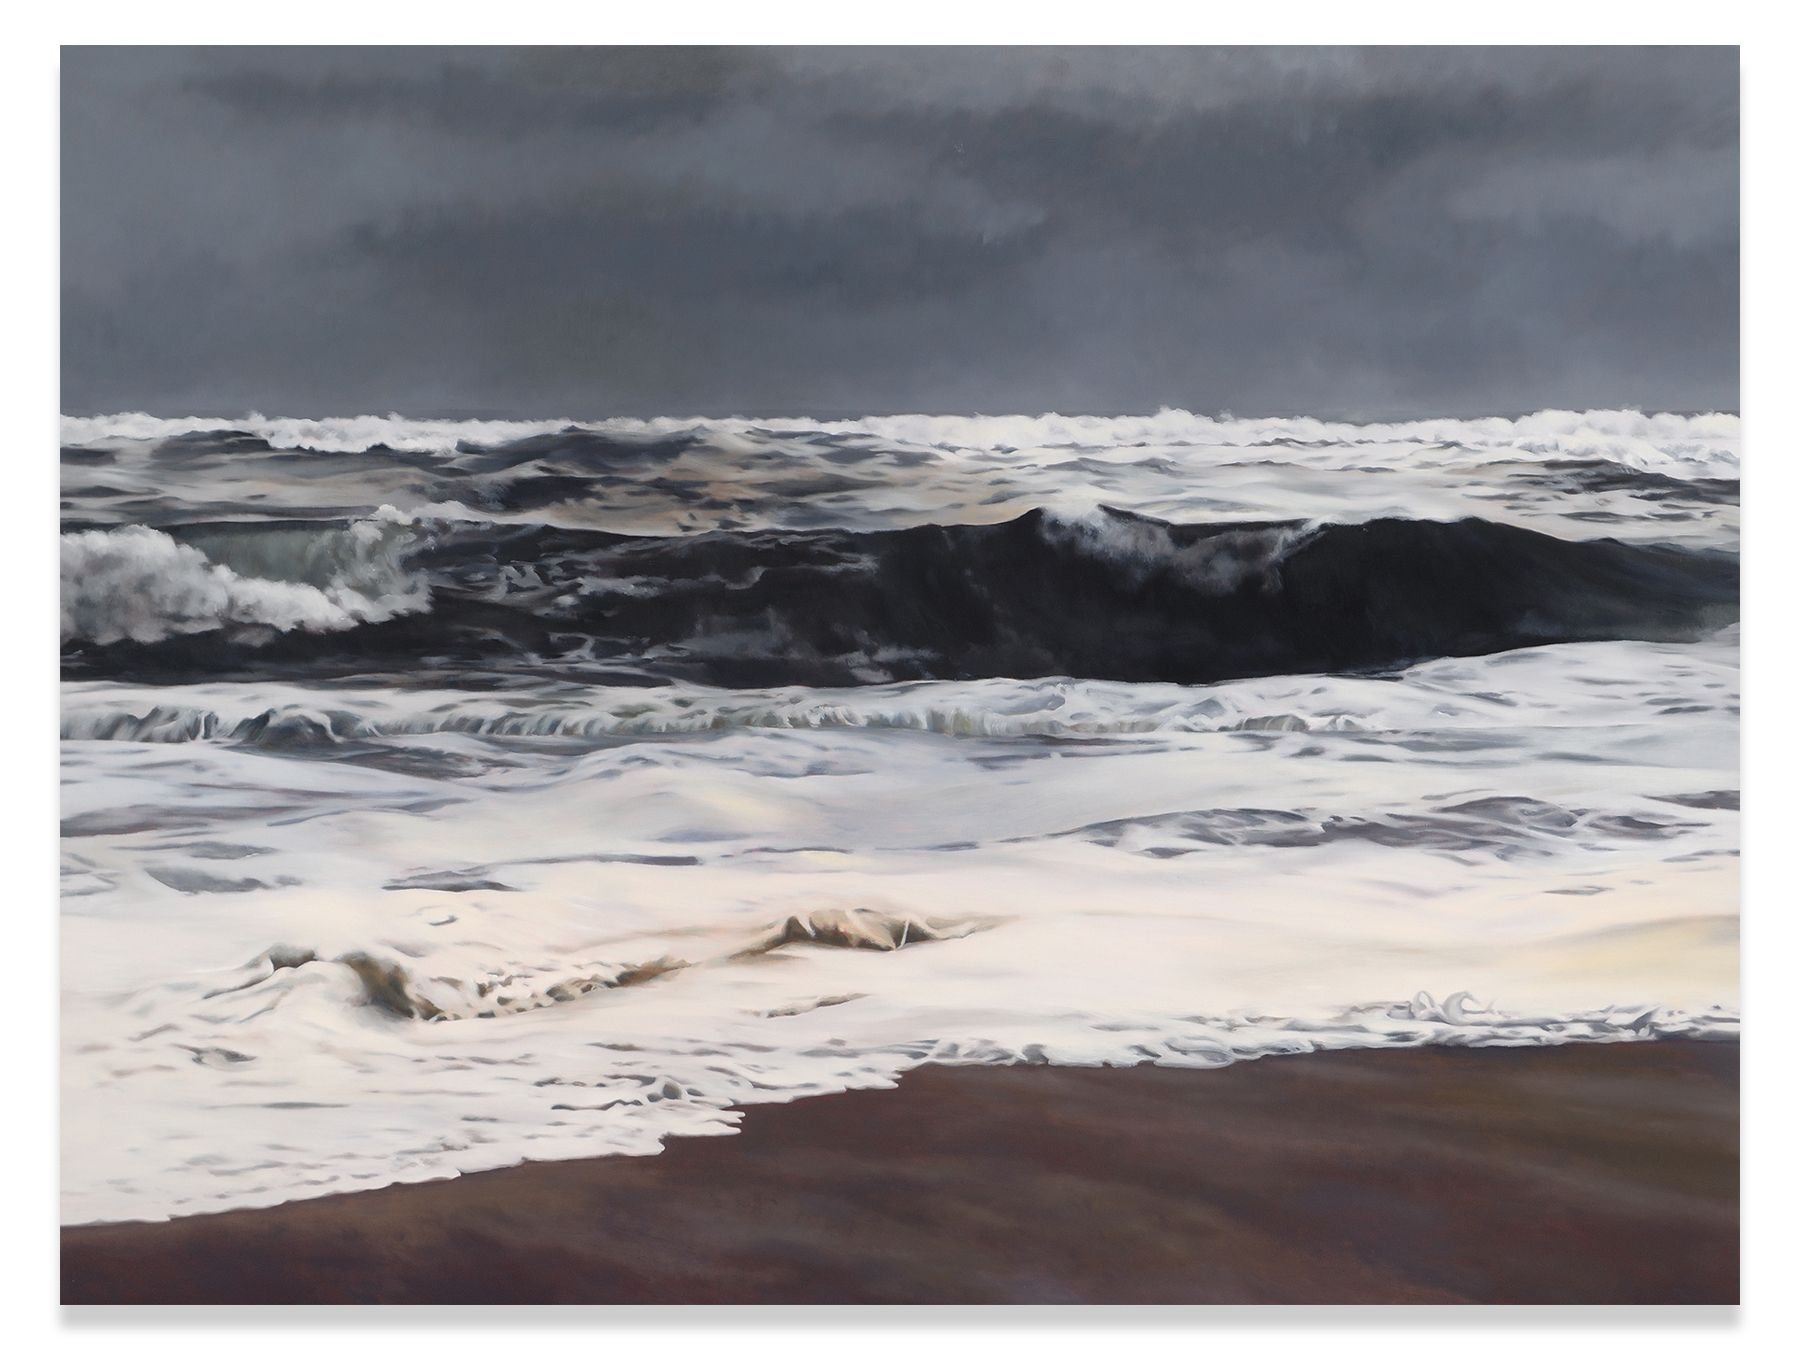 Storm, Light, Ocean, 2014, Oil on linen, 74 x 98.5 inches, 188 x 250.2 cm, MMG#30408